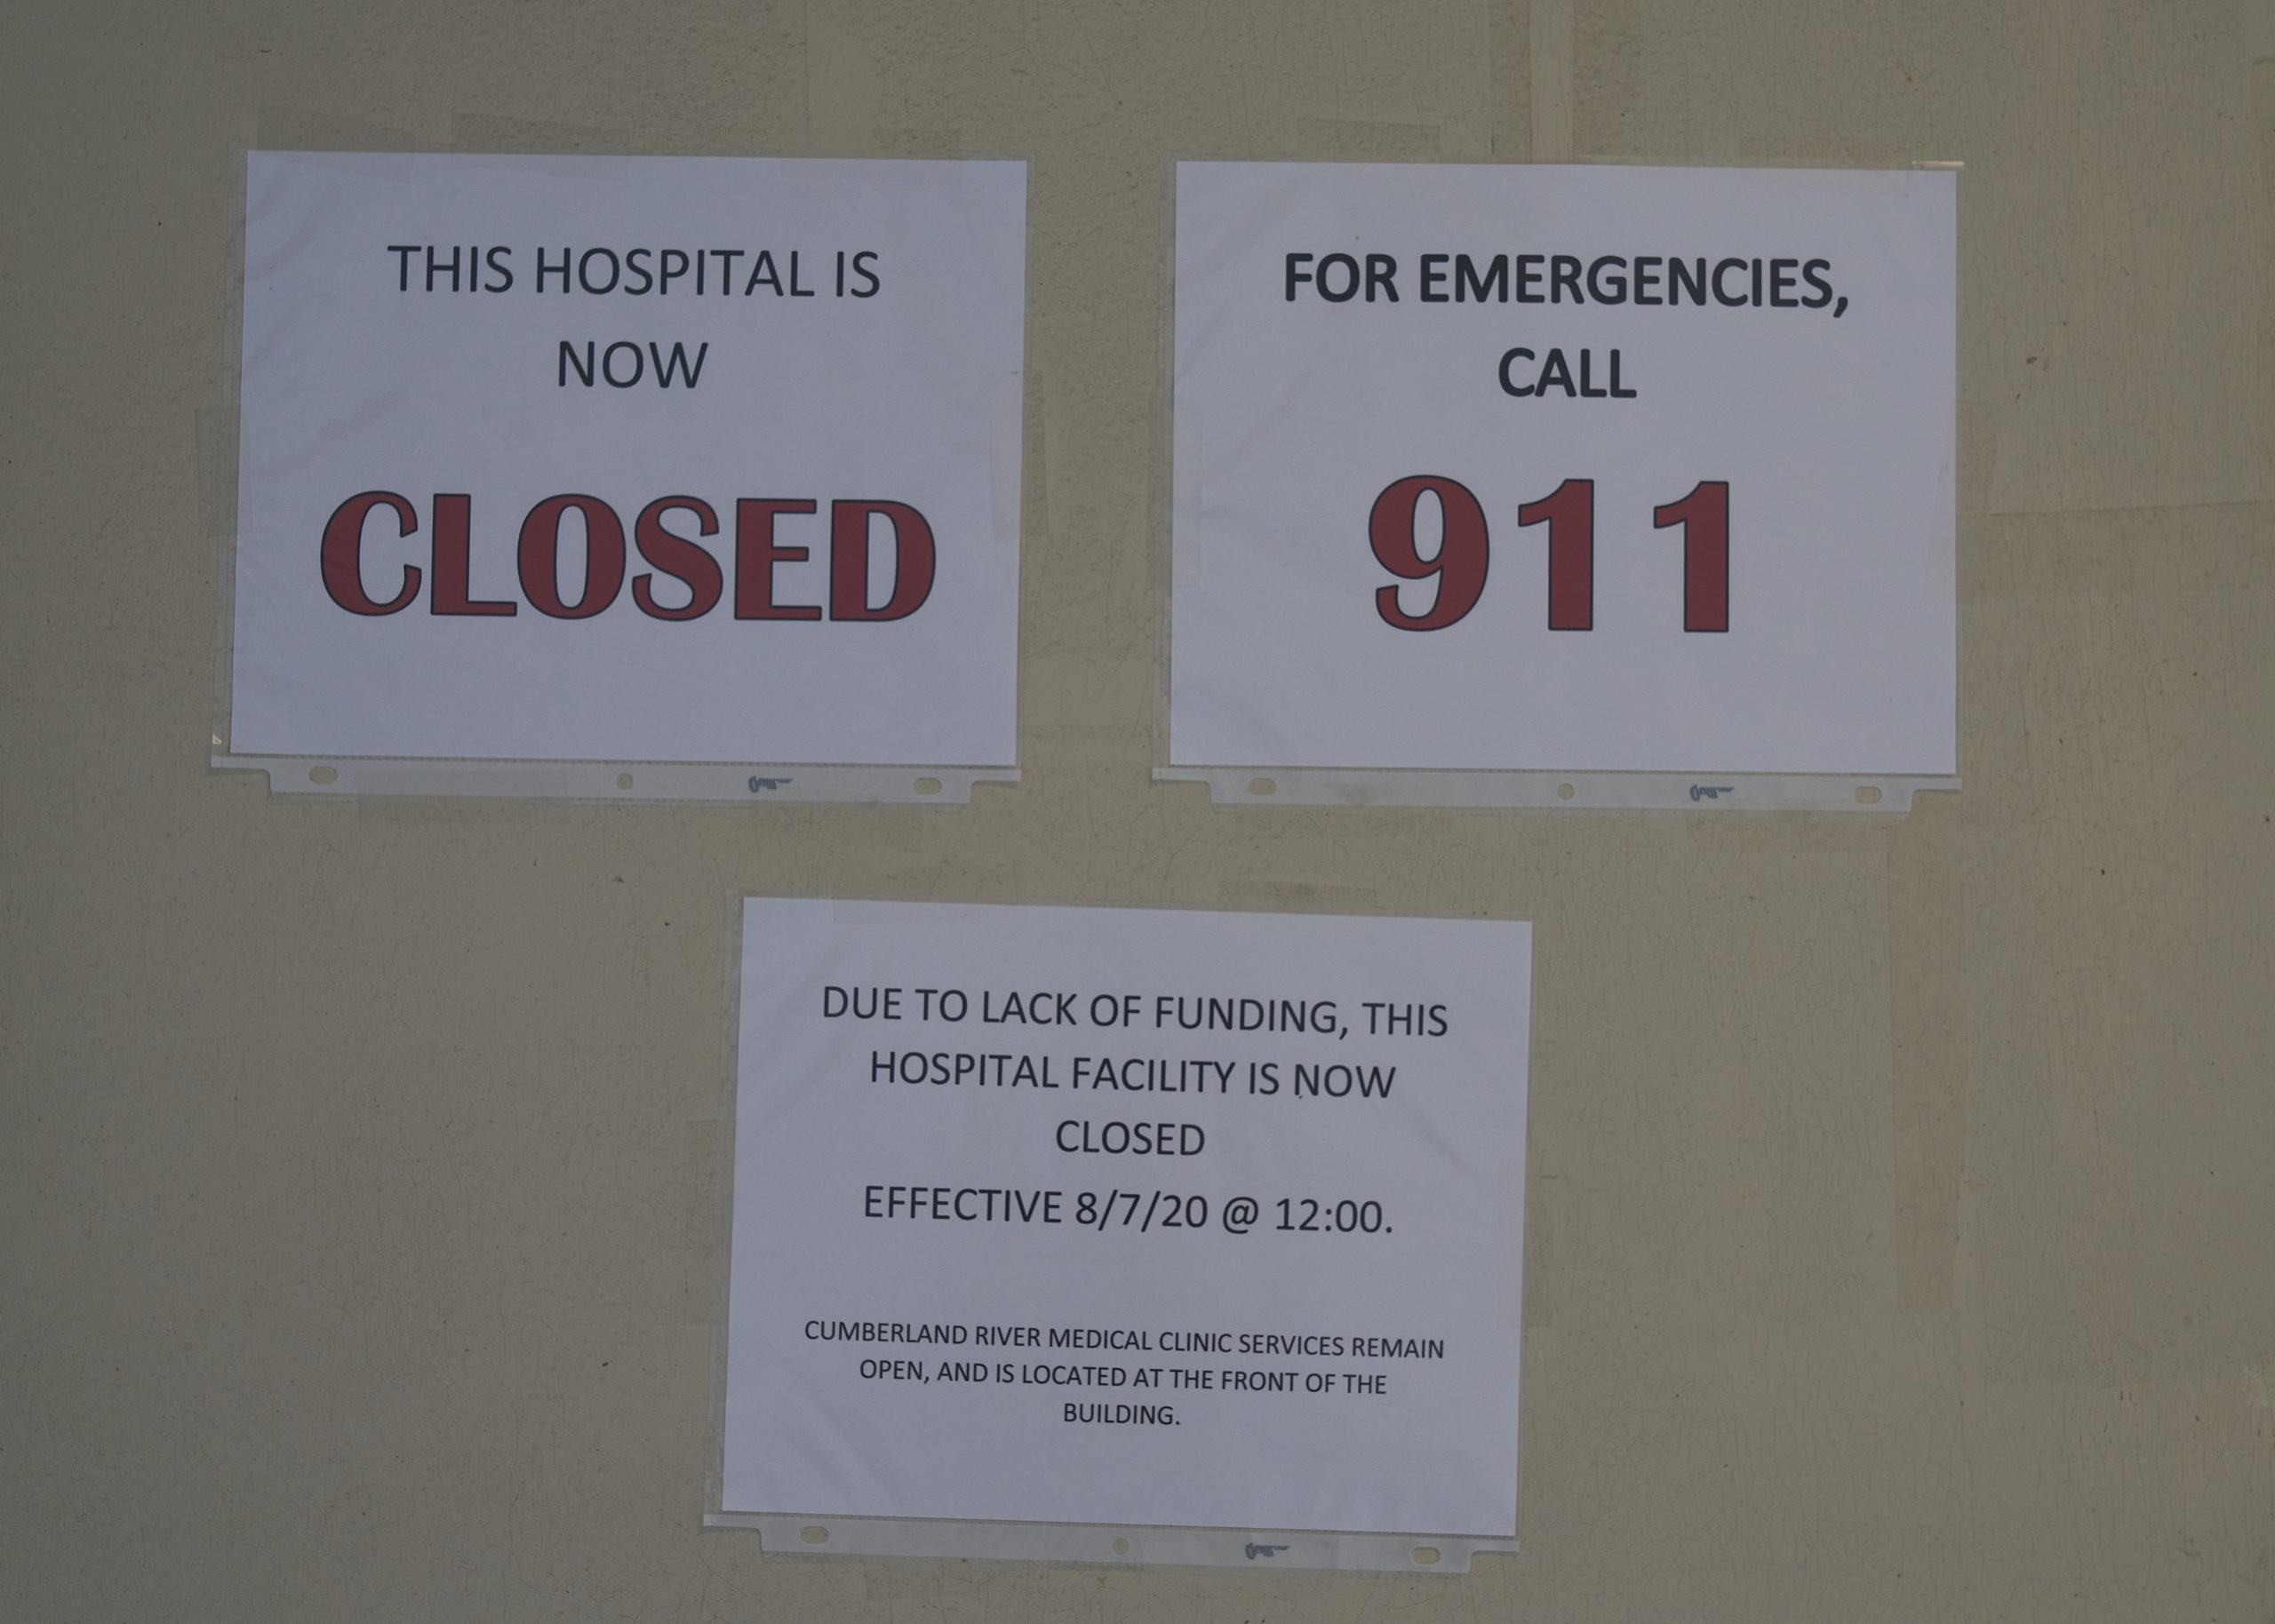 Rural Tennessee is Losing More Hospitals Than Anywhere in the Country, But COVID-19 Isn't Fully to Blame